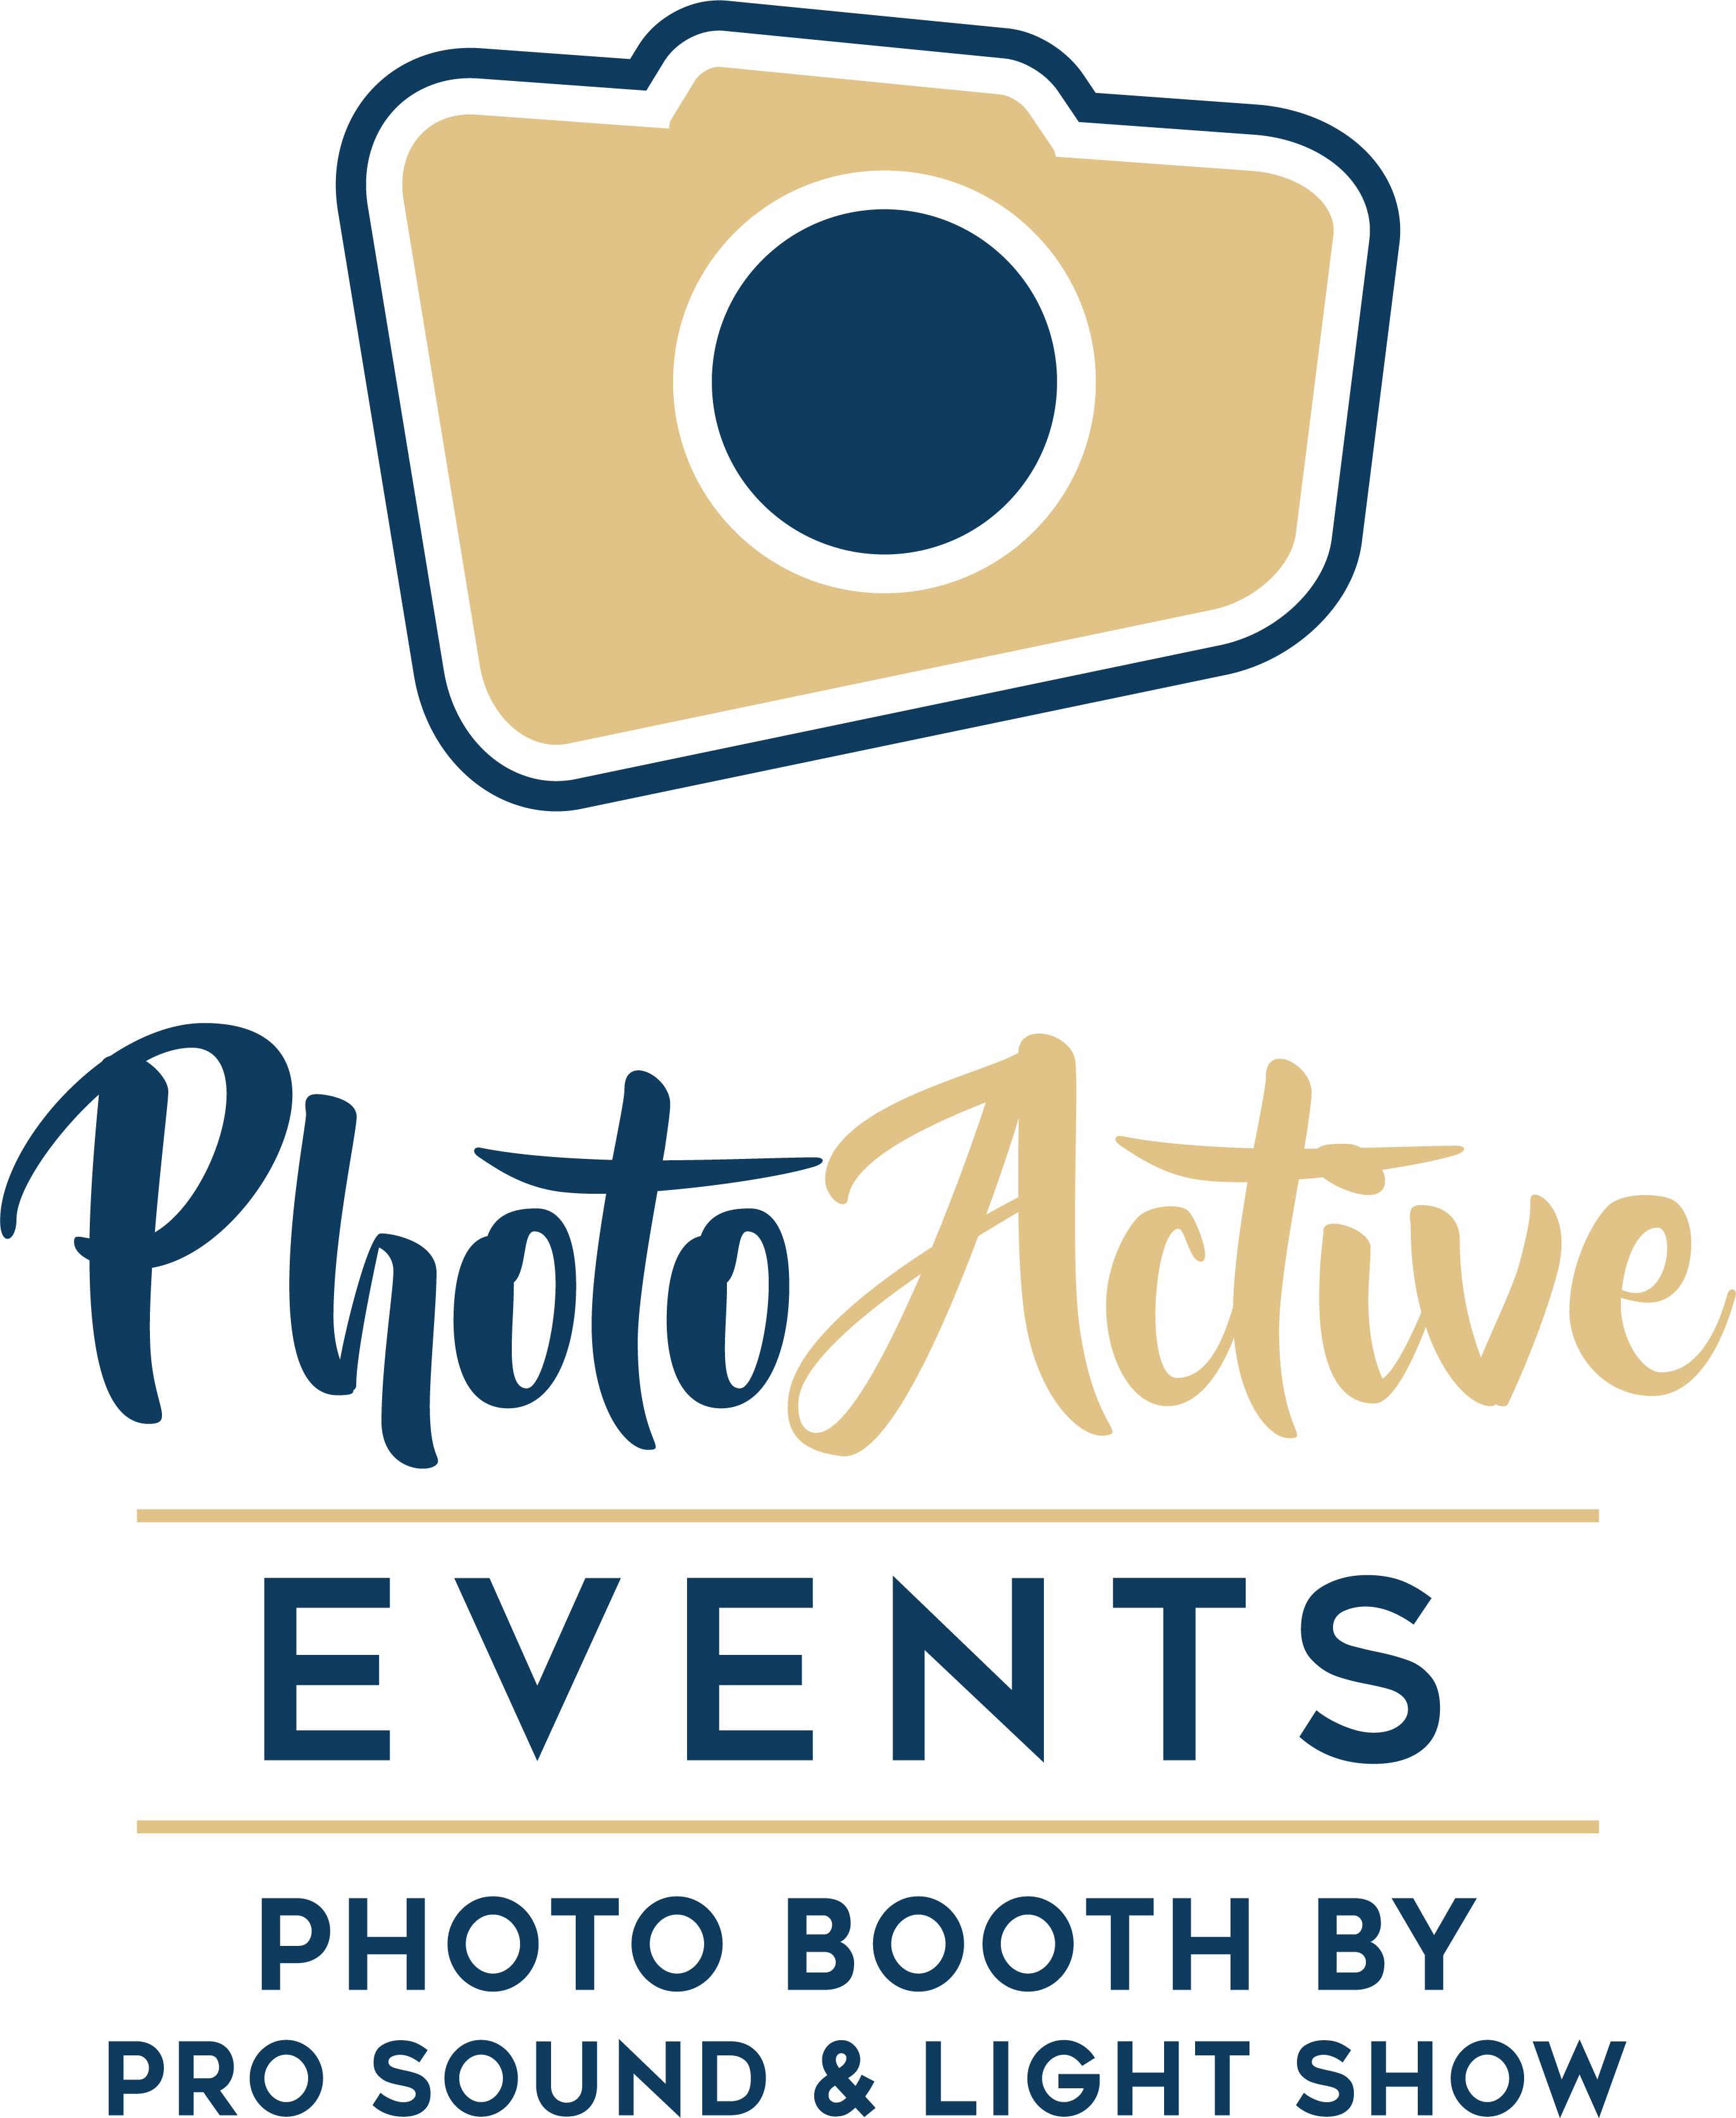 Fundraiser clipart upcoming event. Photo booth photoactive events